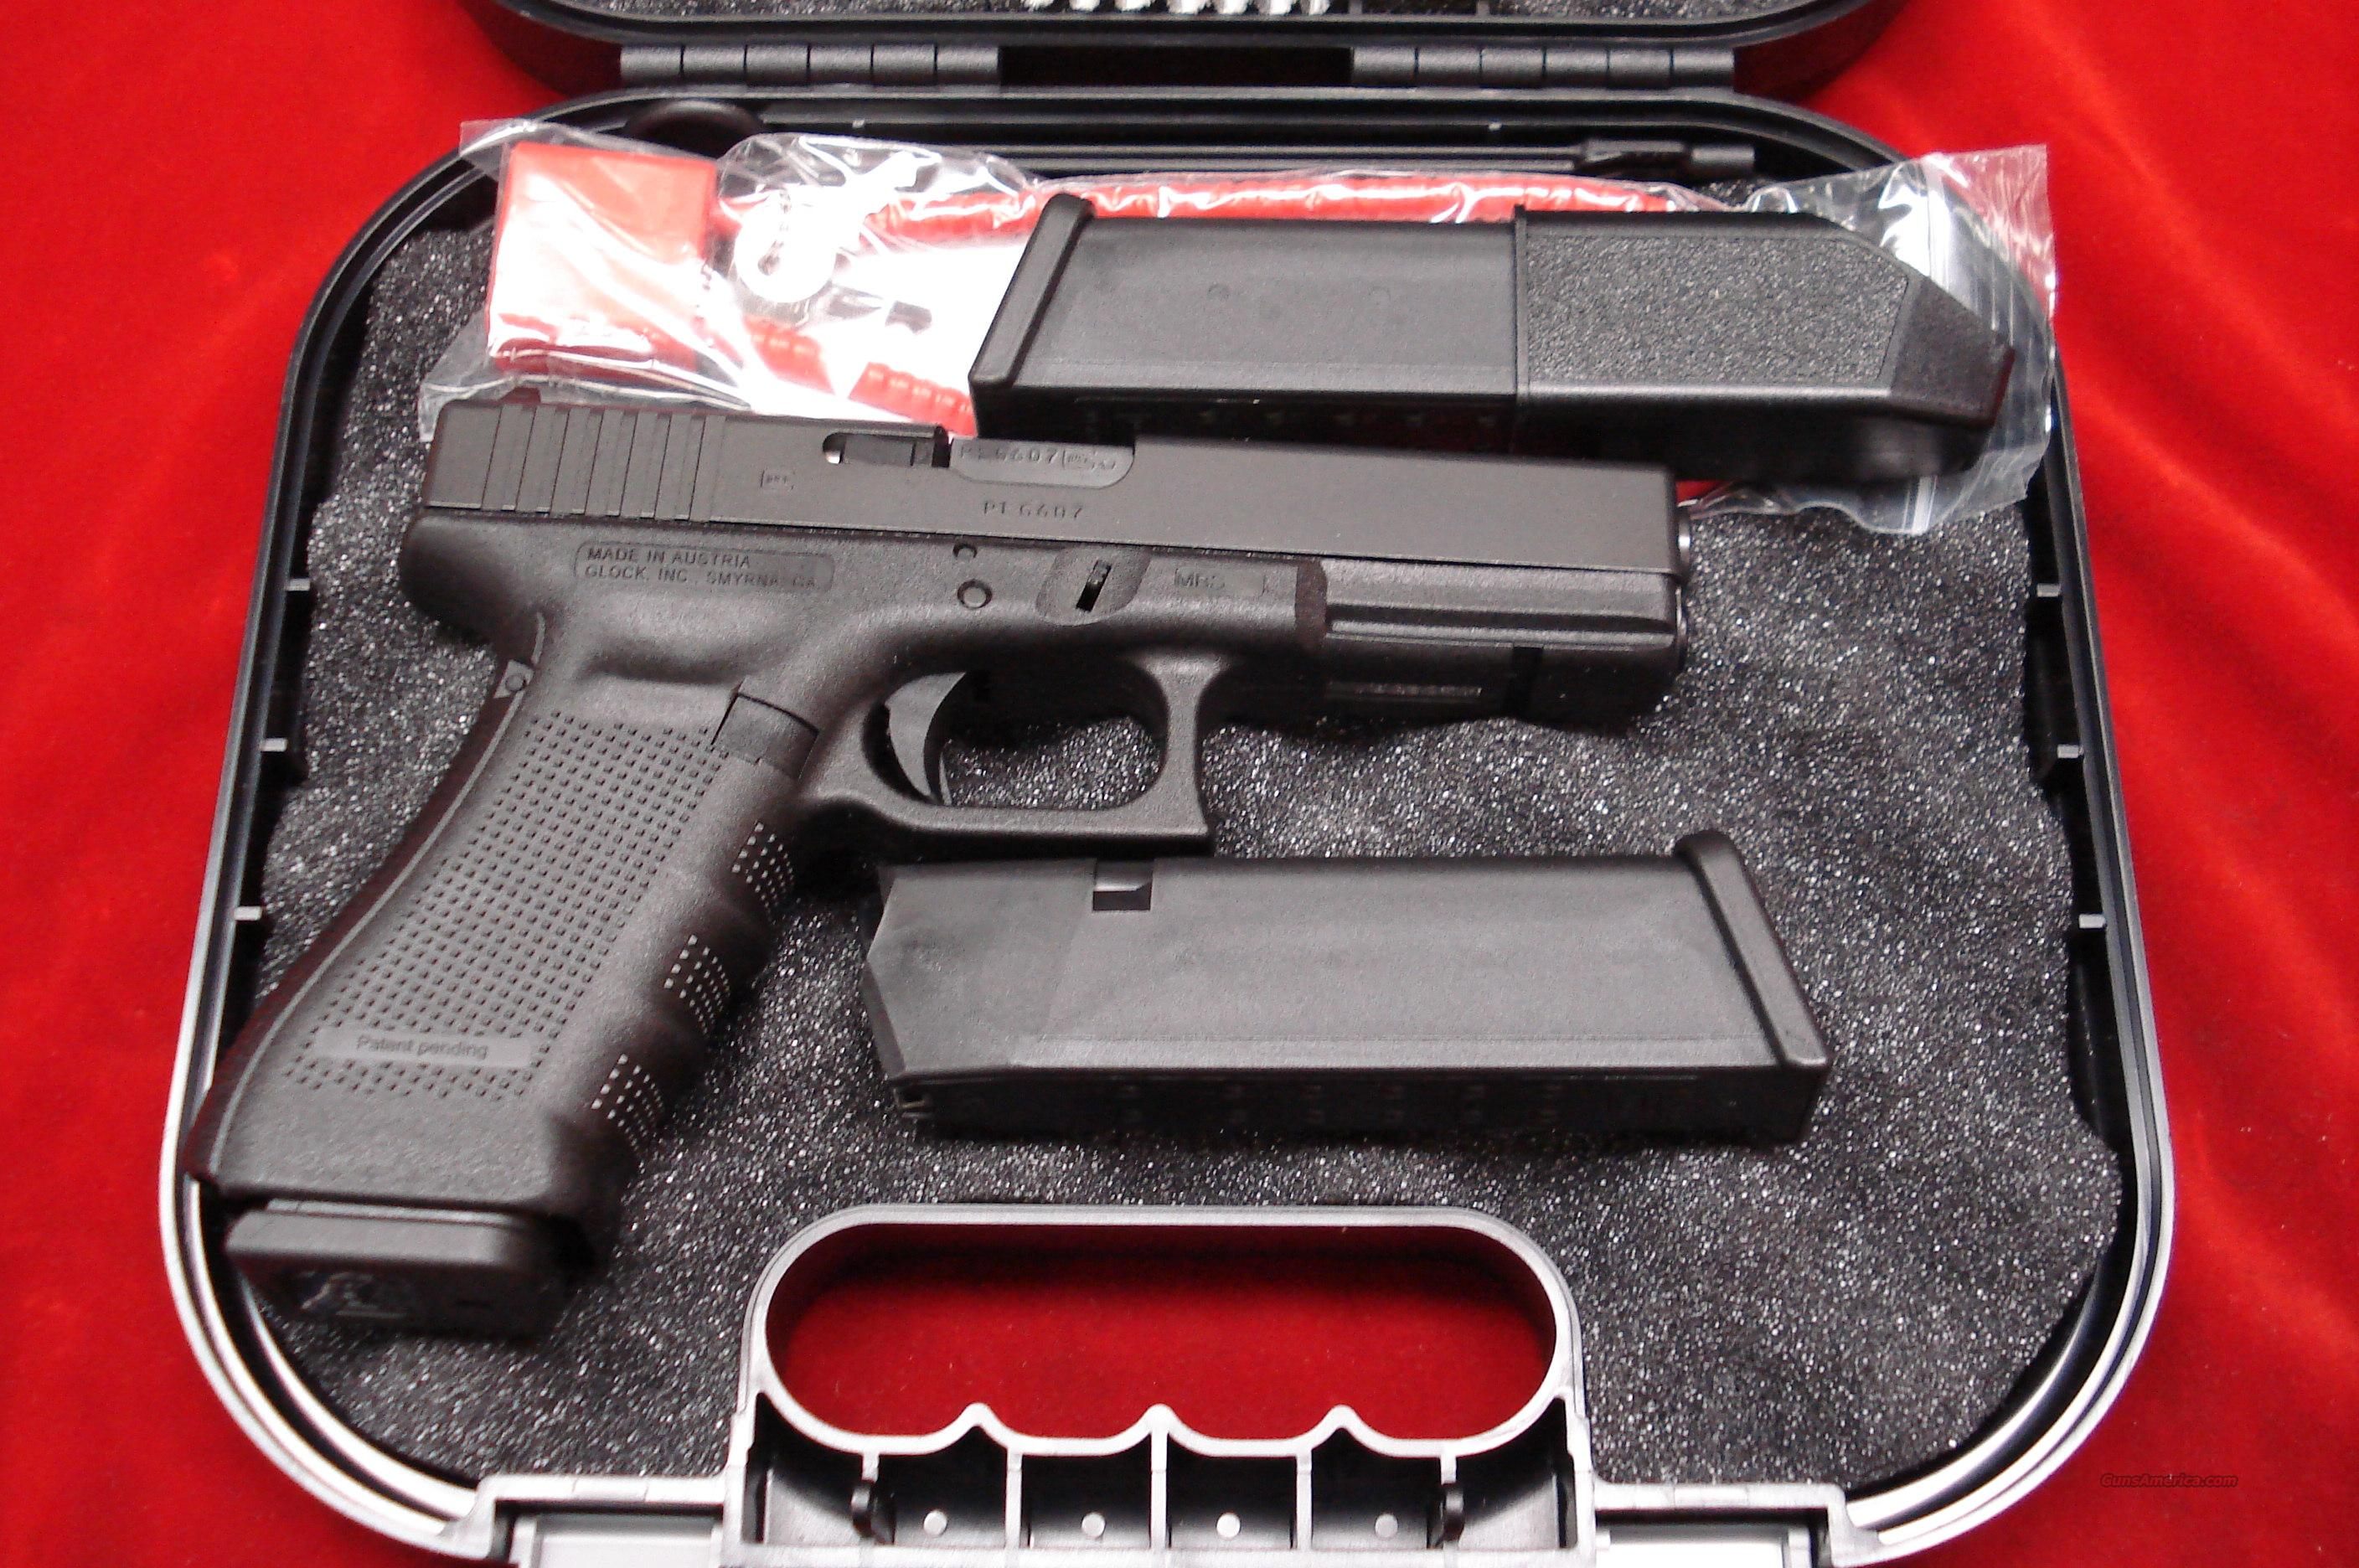 GLOCK NEW MODEL 22 GENERATION 4 .40CAL. WITH 3 HIGH CAPACITY MAGAZINES NEW   Guns > Pistols > Glock Pistols > 22